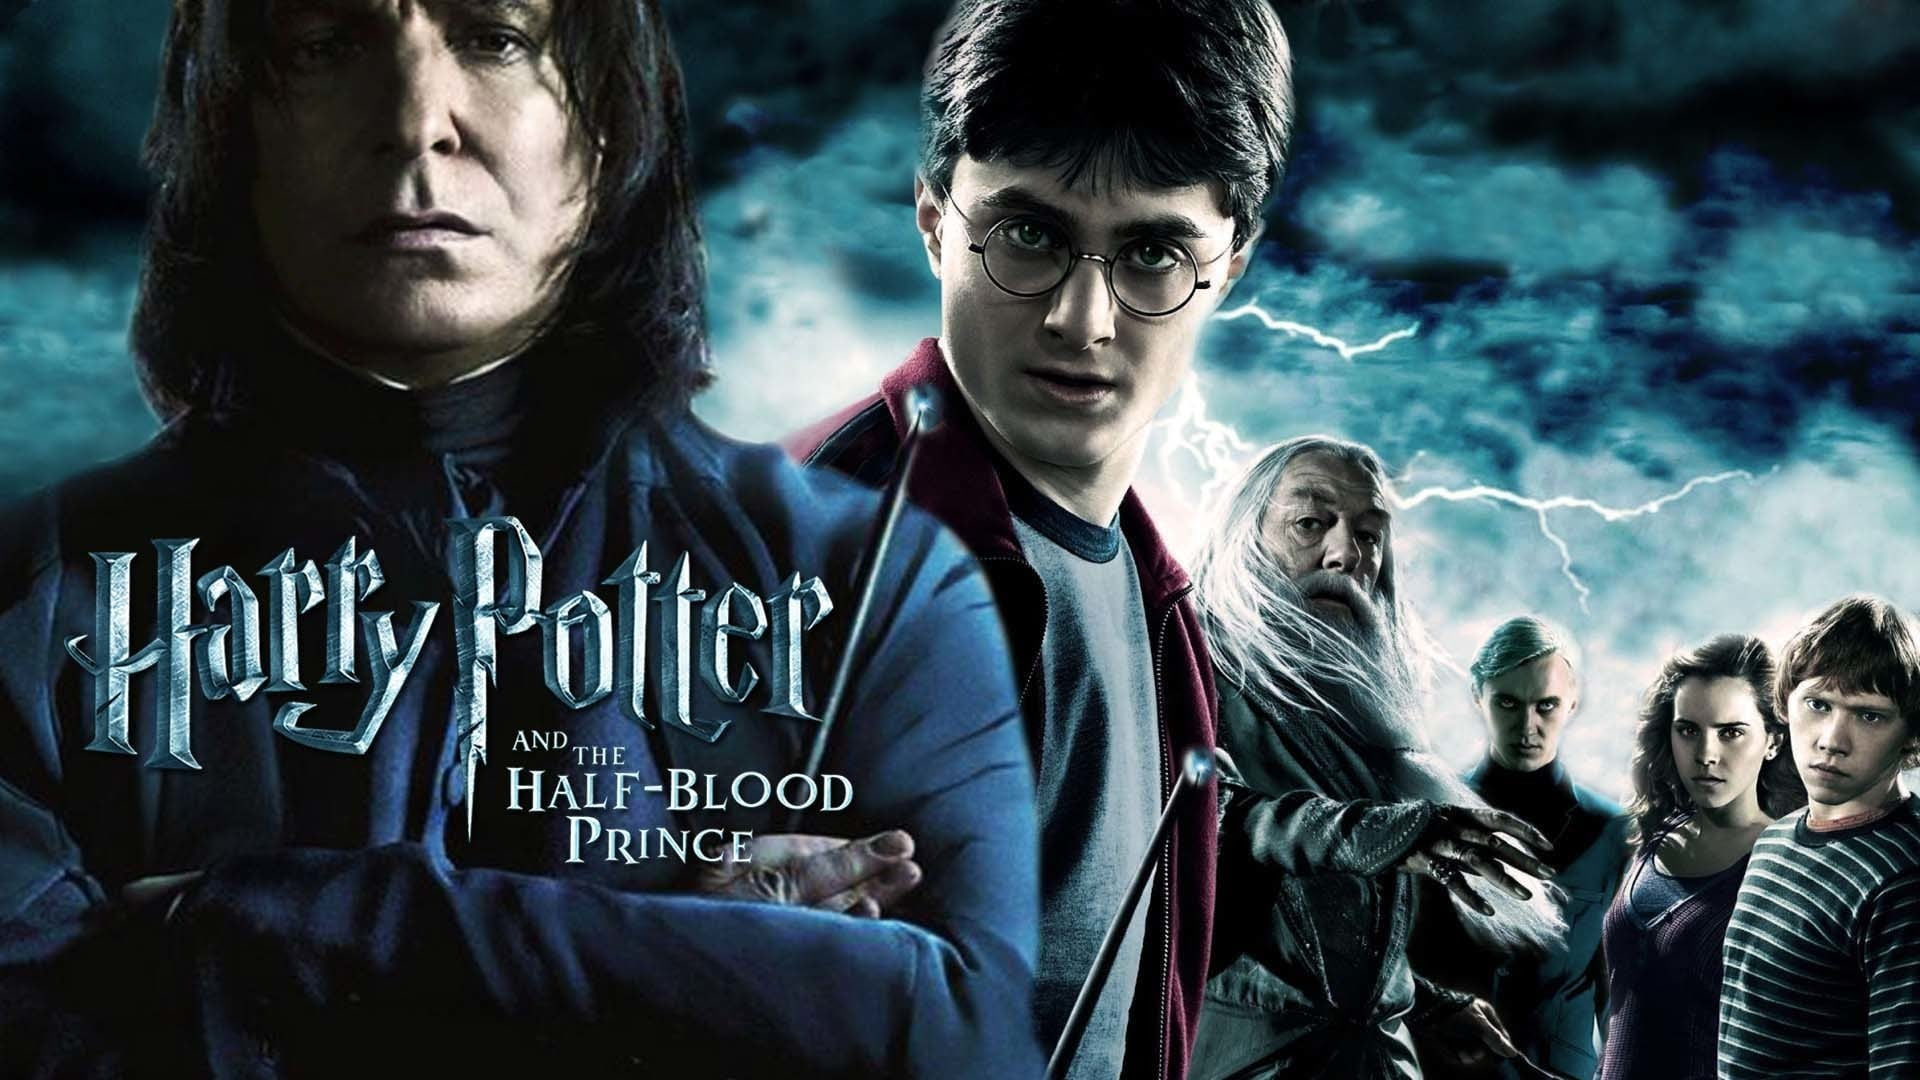 Movie release of half blood prince